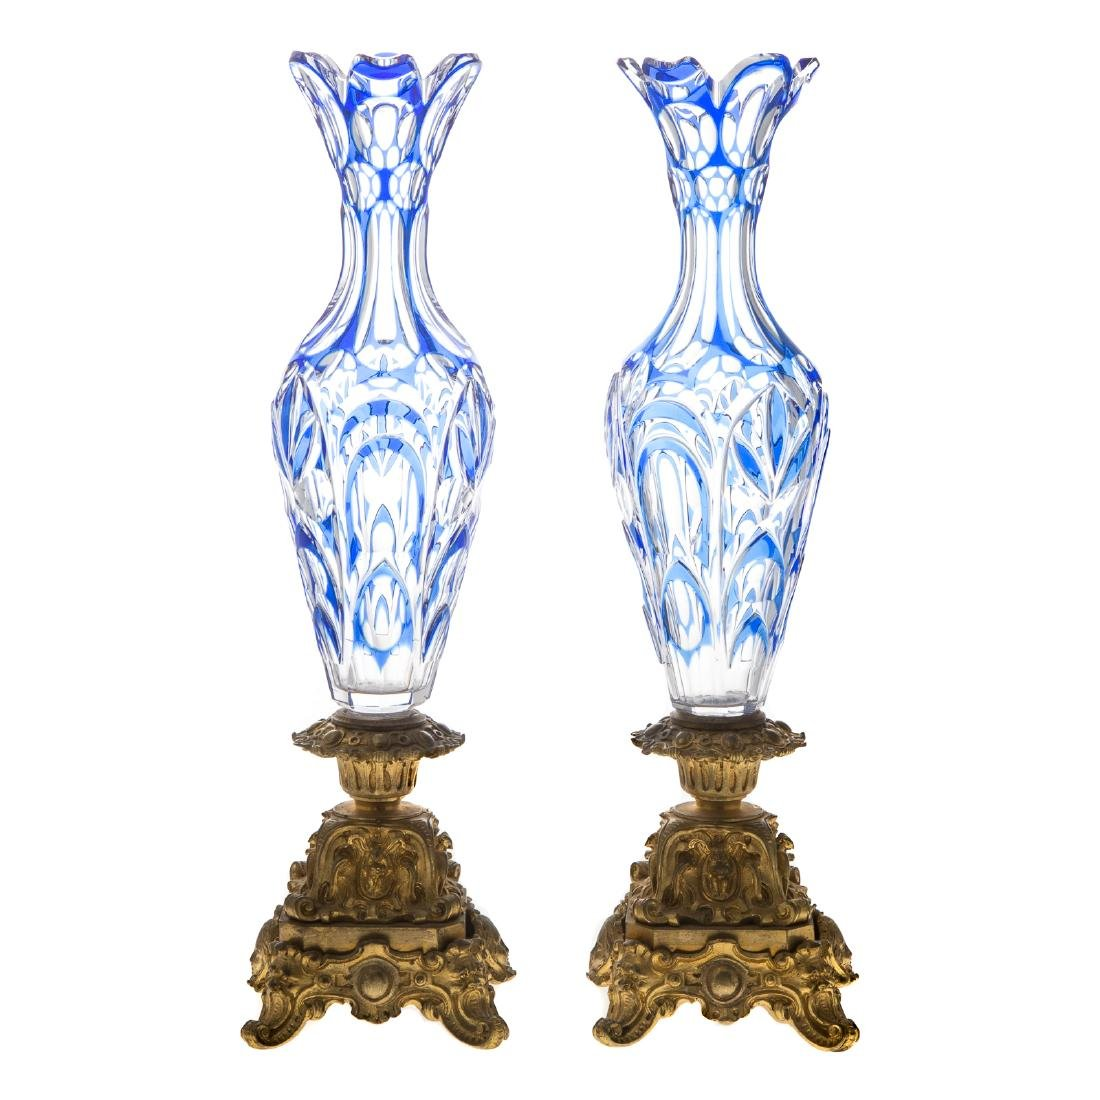 Pair Bohemian style glass and gilt-bronze vases